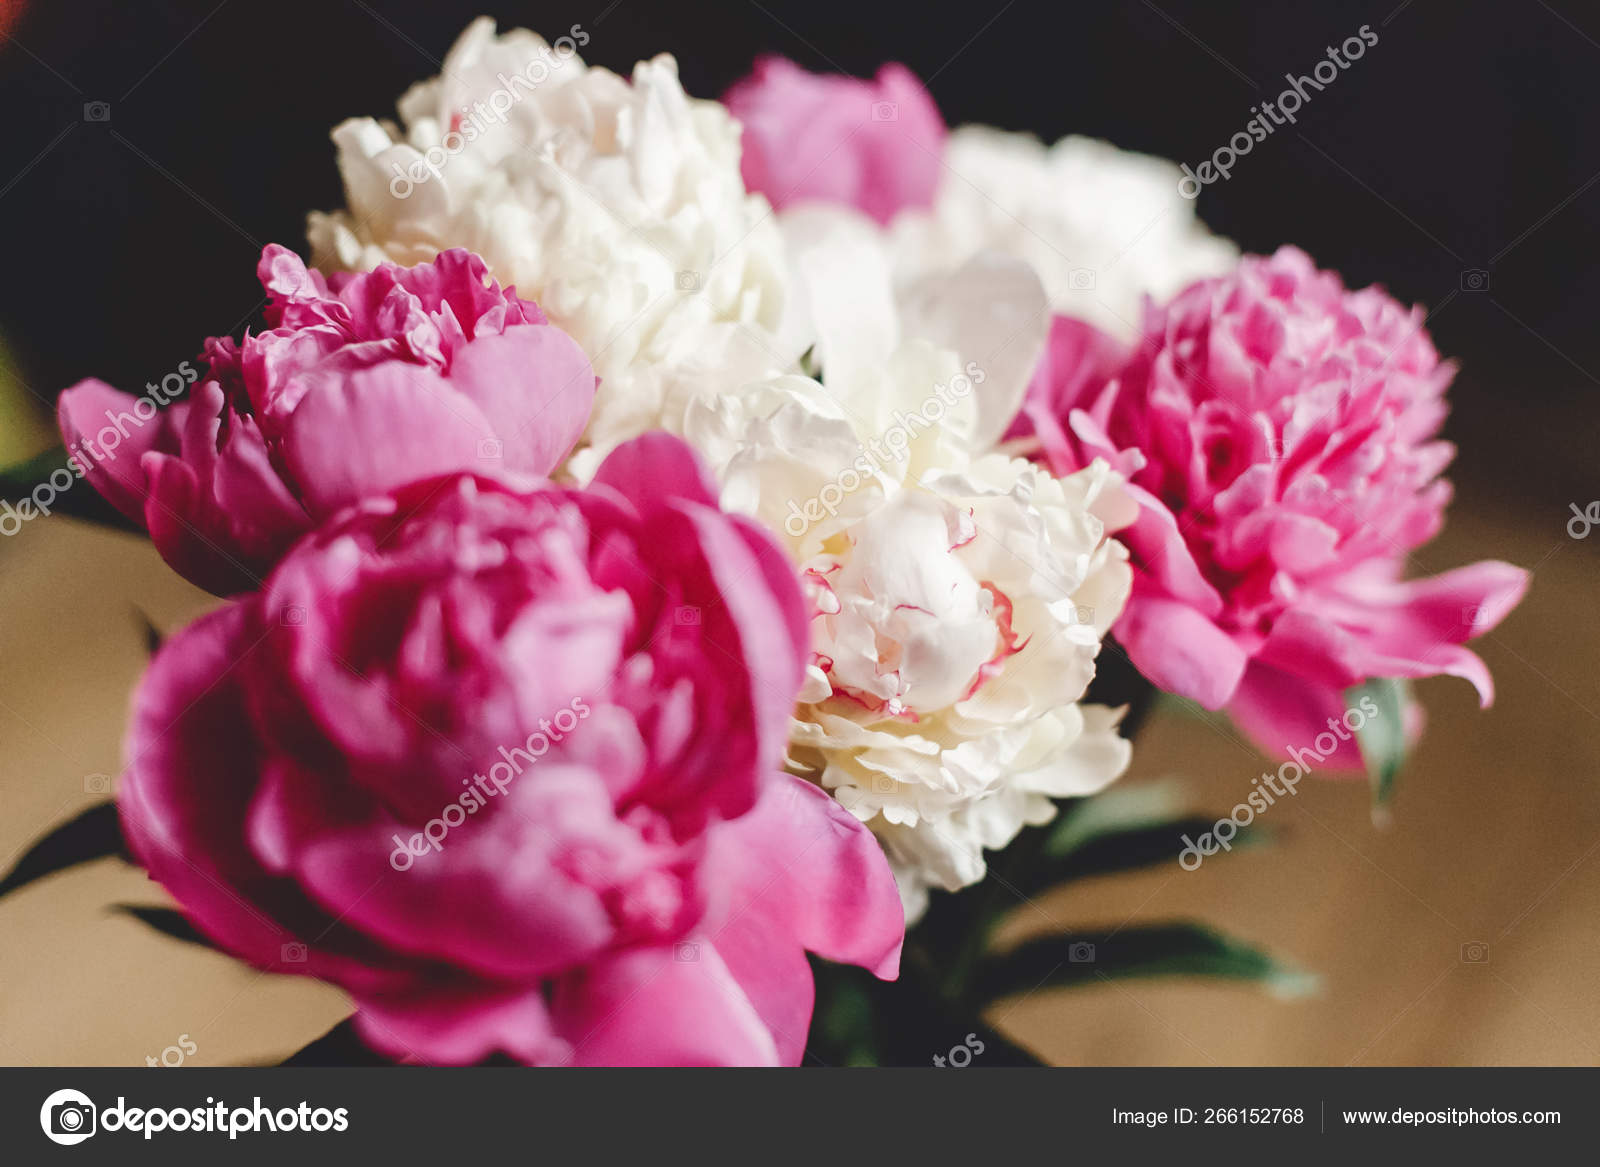 Beautiful Pink And White Peonies Bouquet In Glass Jar On Rustic Stock Photo C Sonyachny 266152768